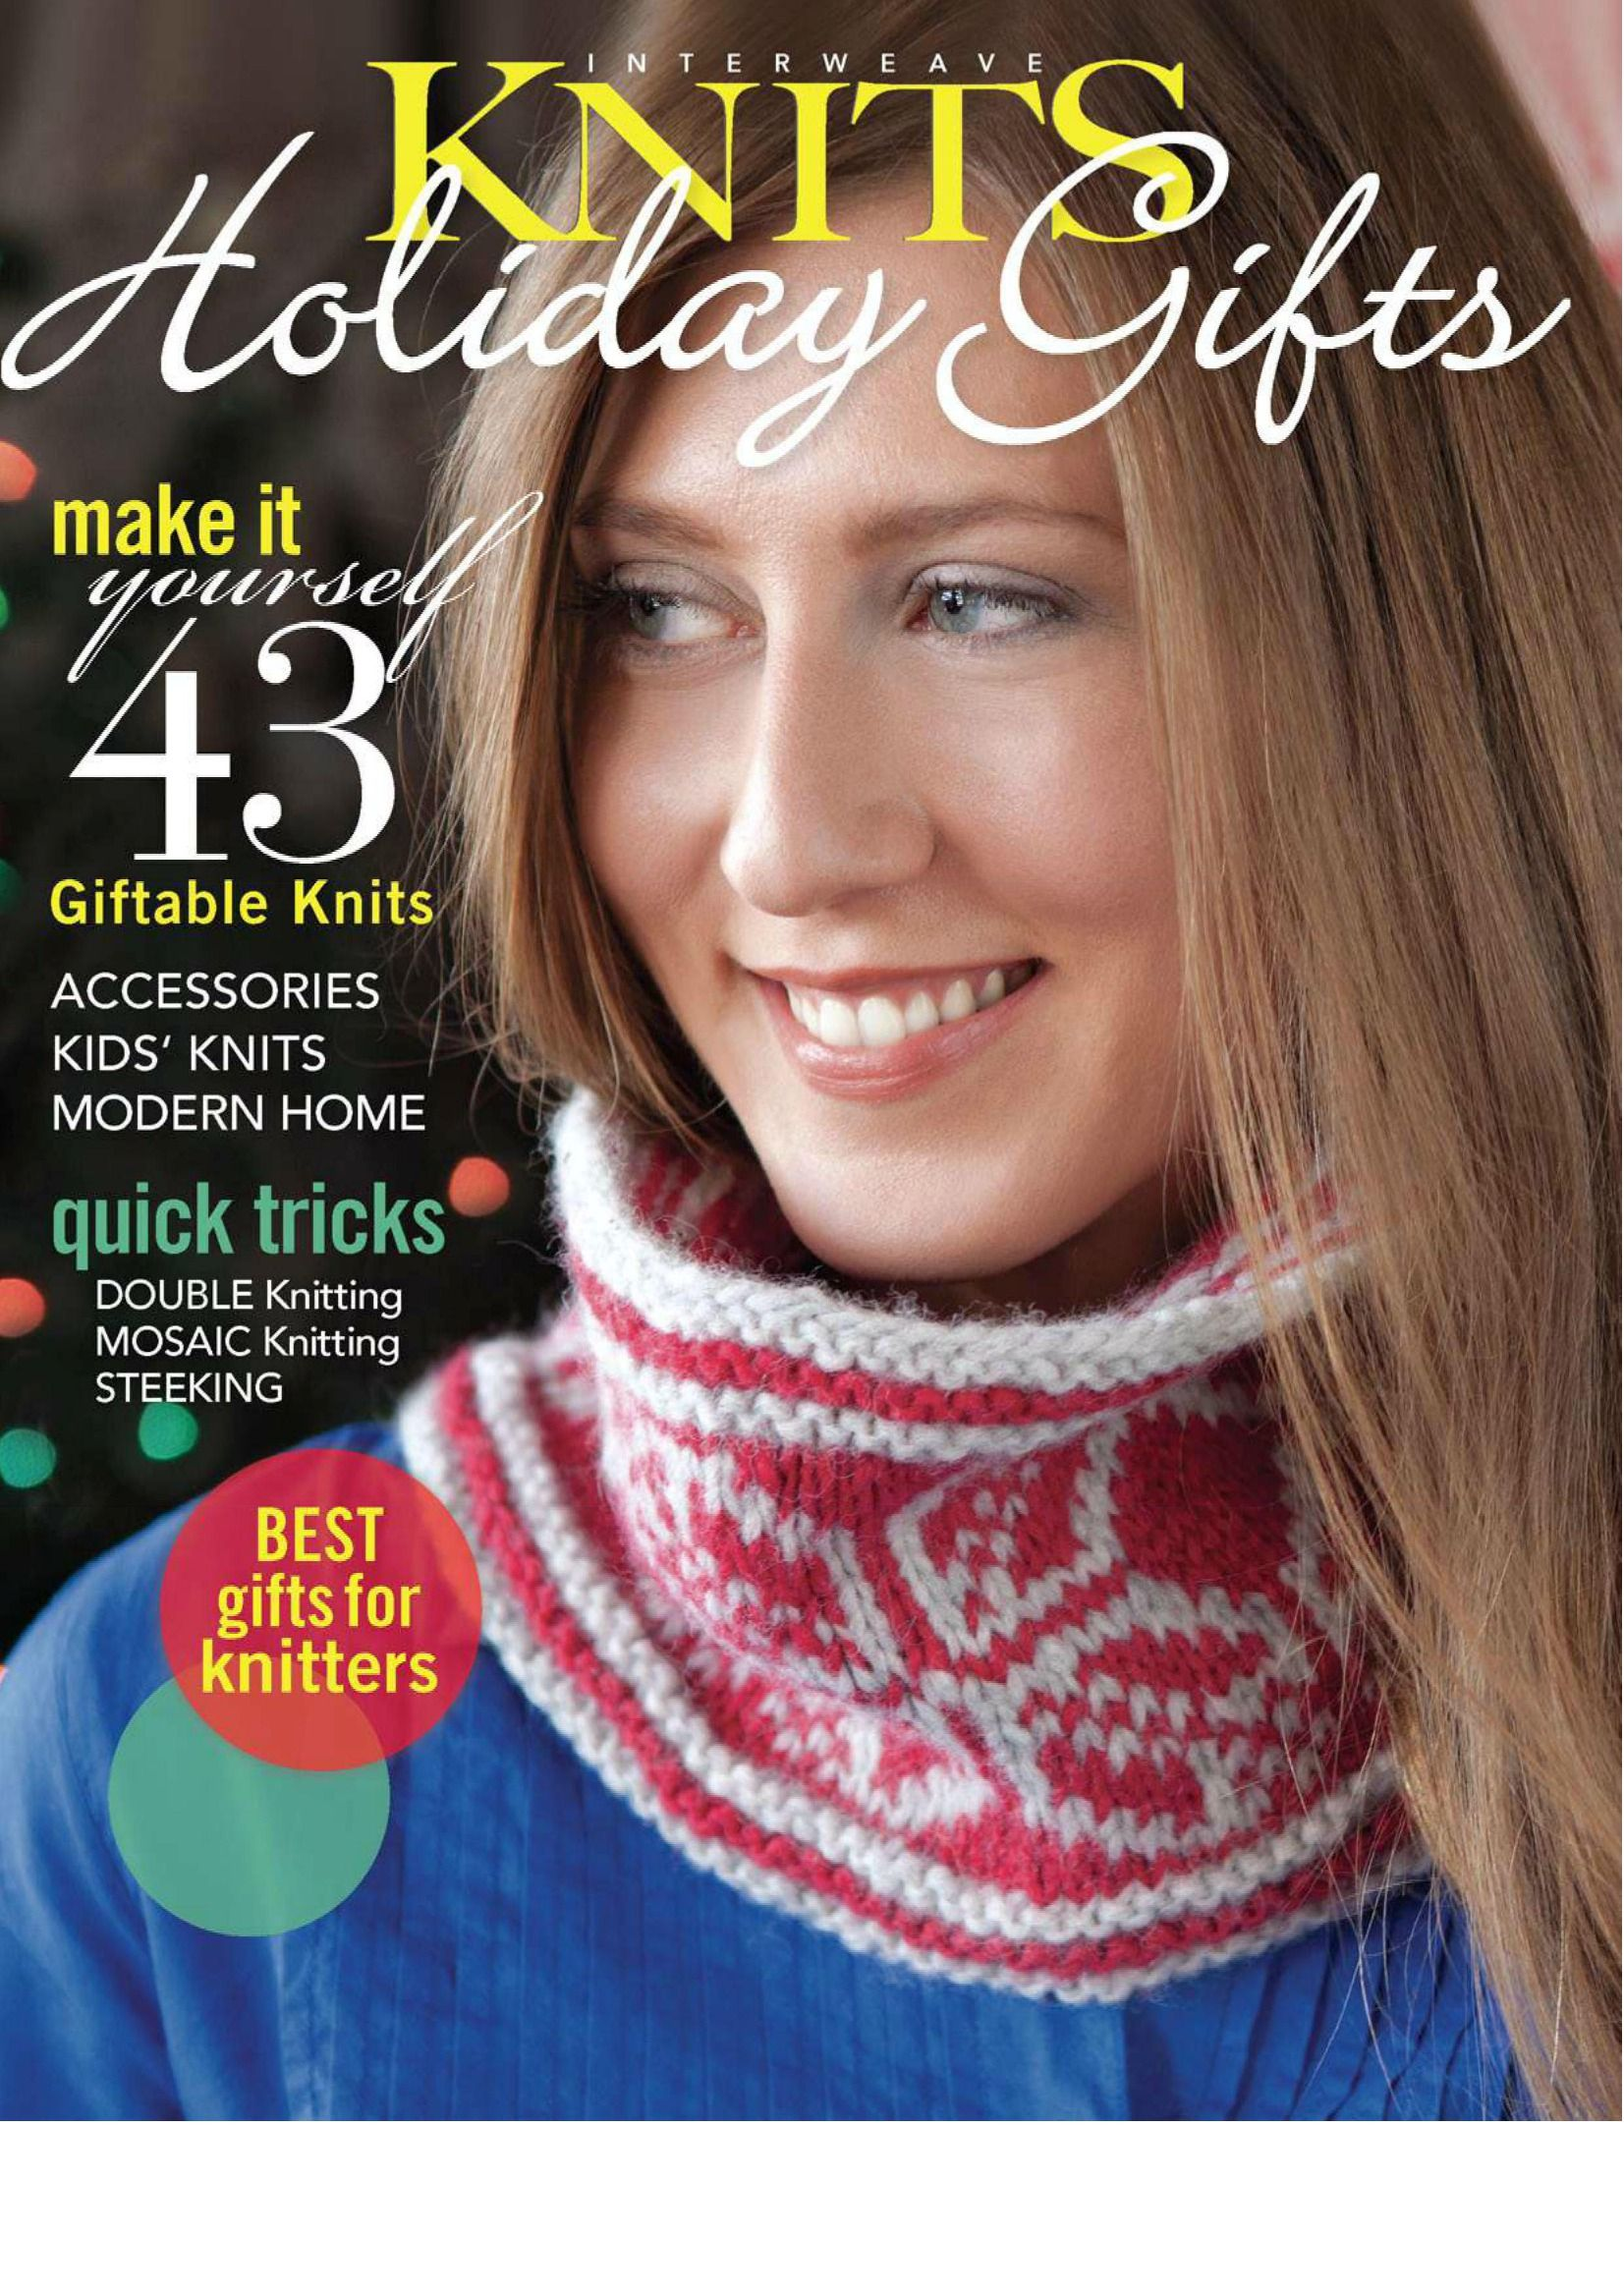 How To Make A Knitted Book Cover ~ Imgbox fast simple image host knitting books